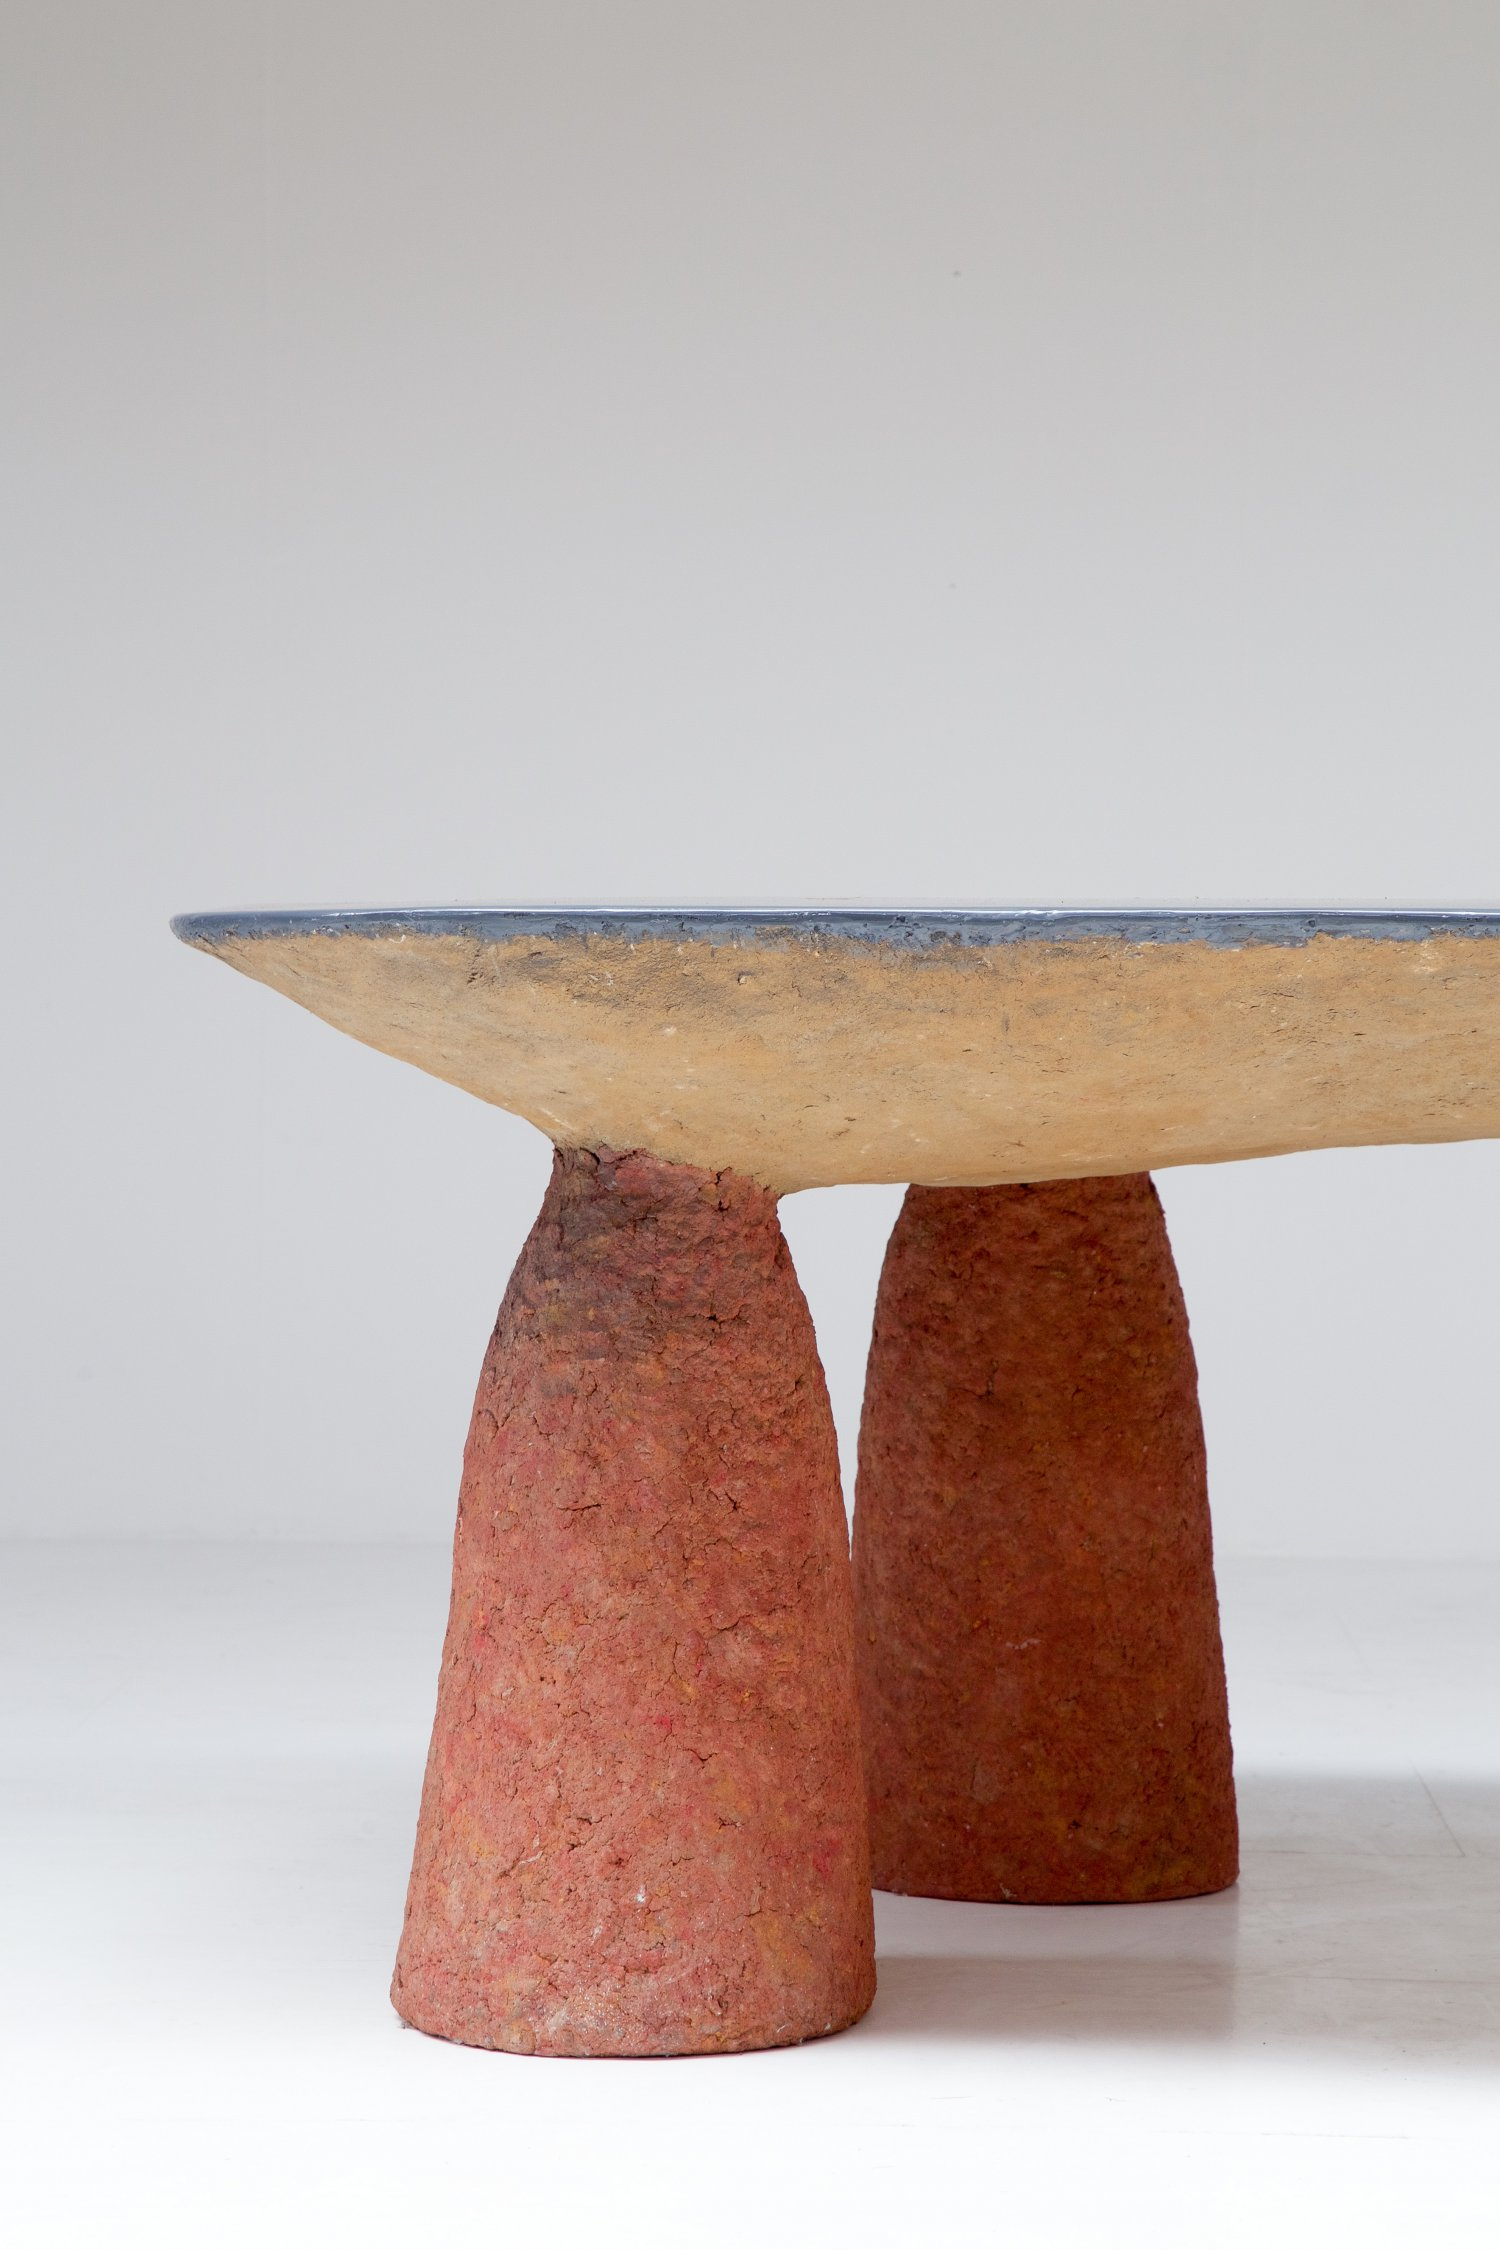 Freeform table